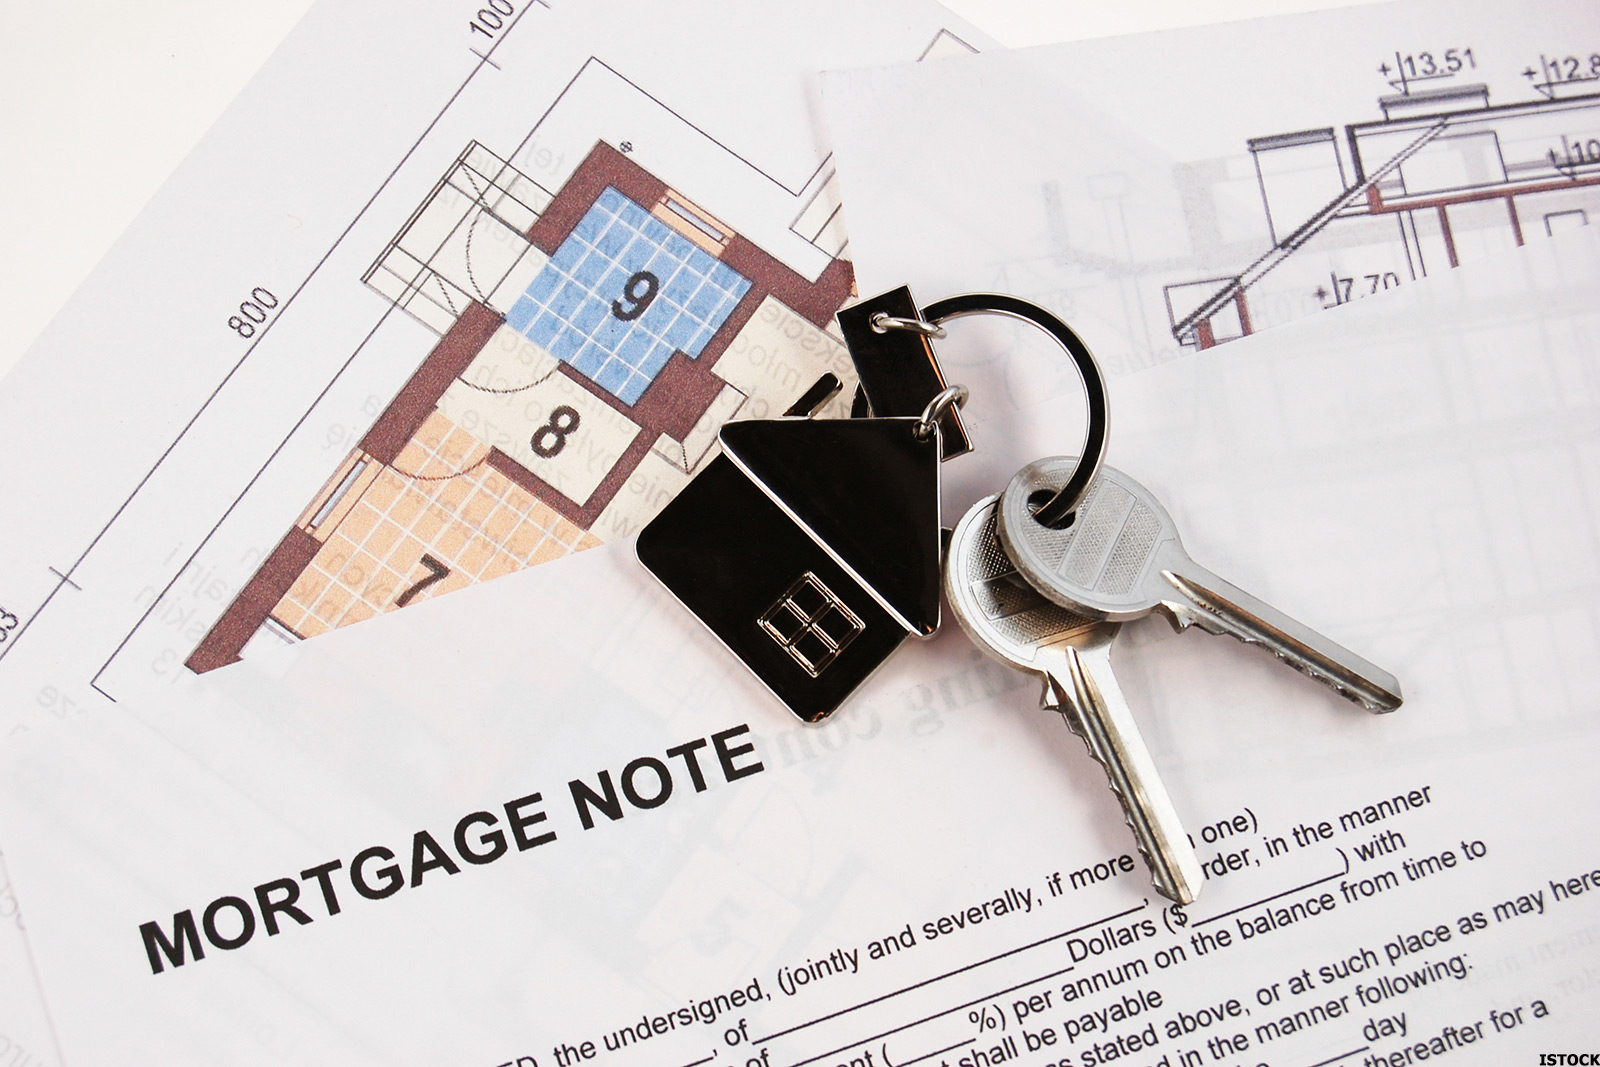 New Mortgage Rule Requires Disclosure Documents To Help Consumers Compare Costs